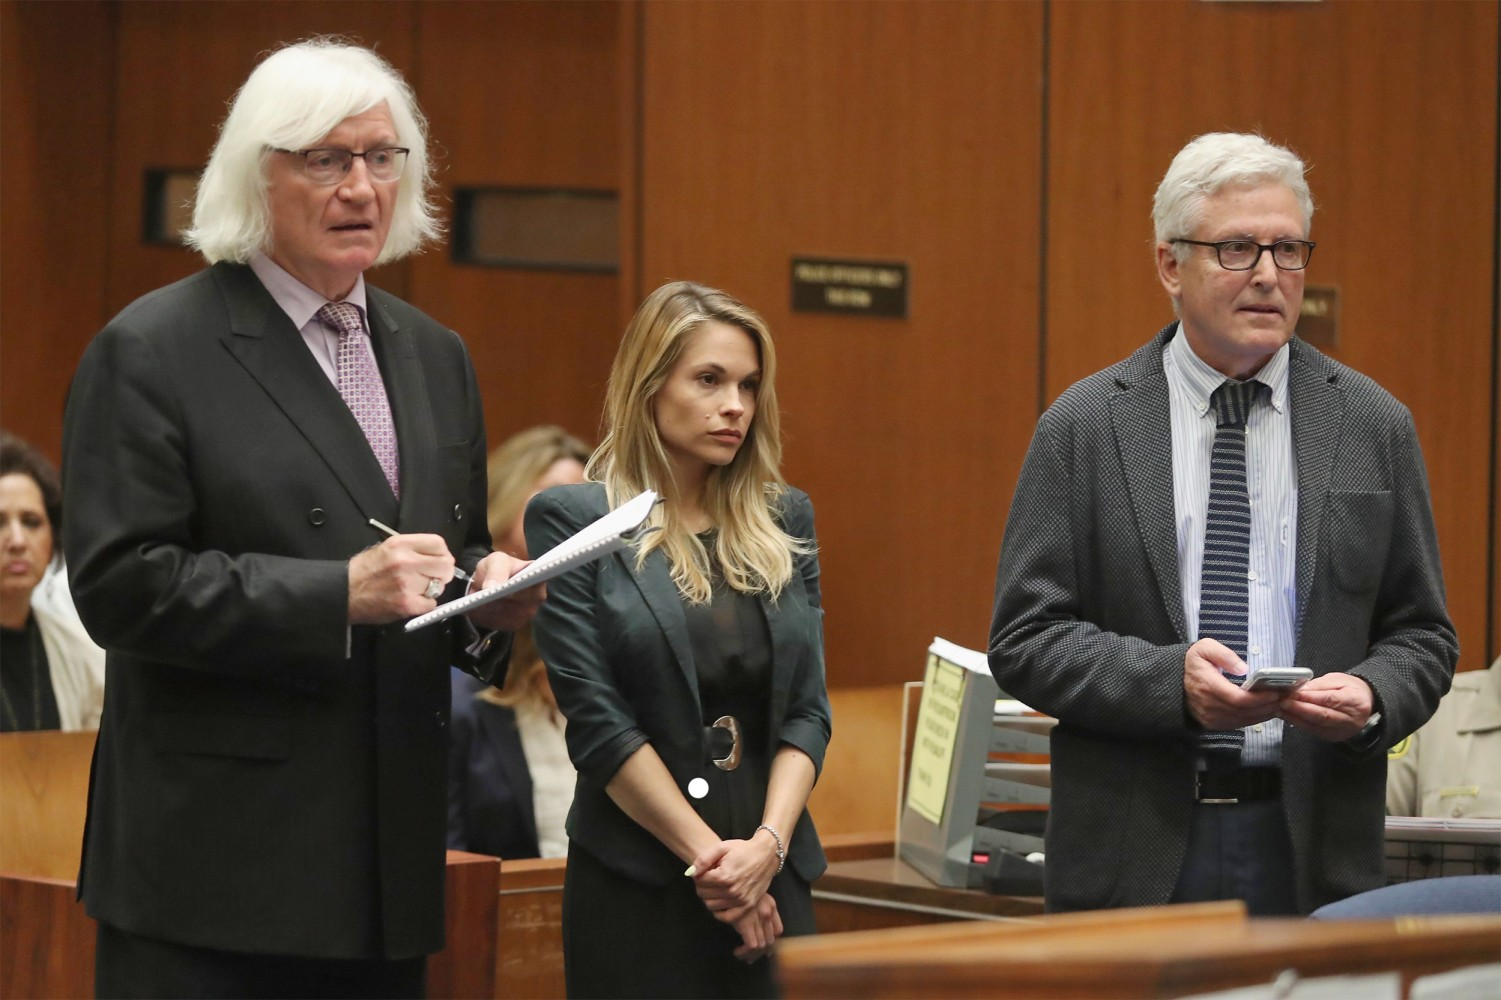 Playboy playmate sentenced to probation, community service in body-shaming case